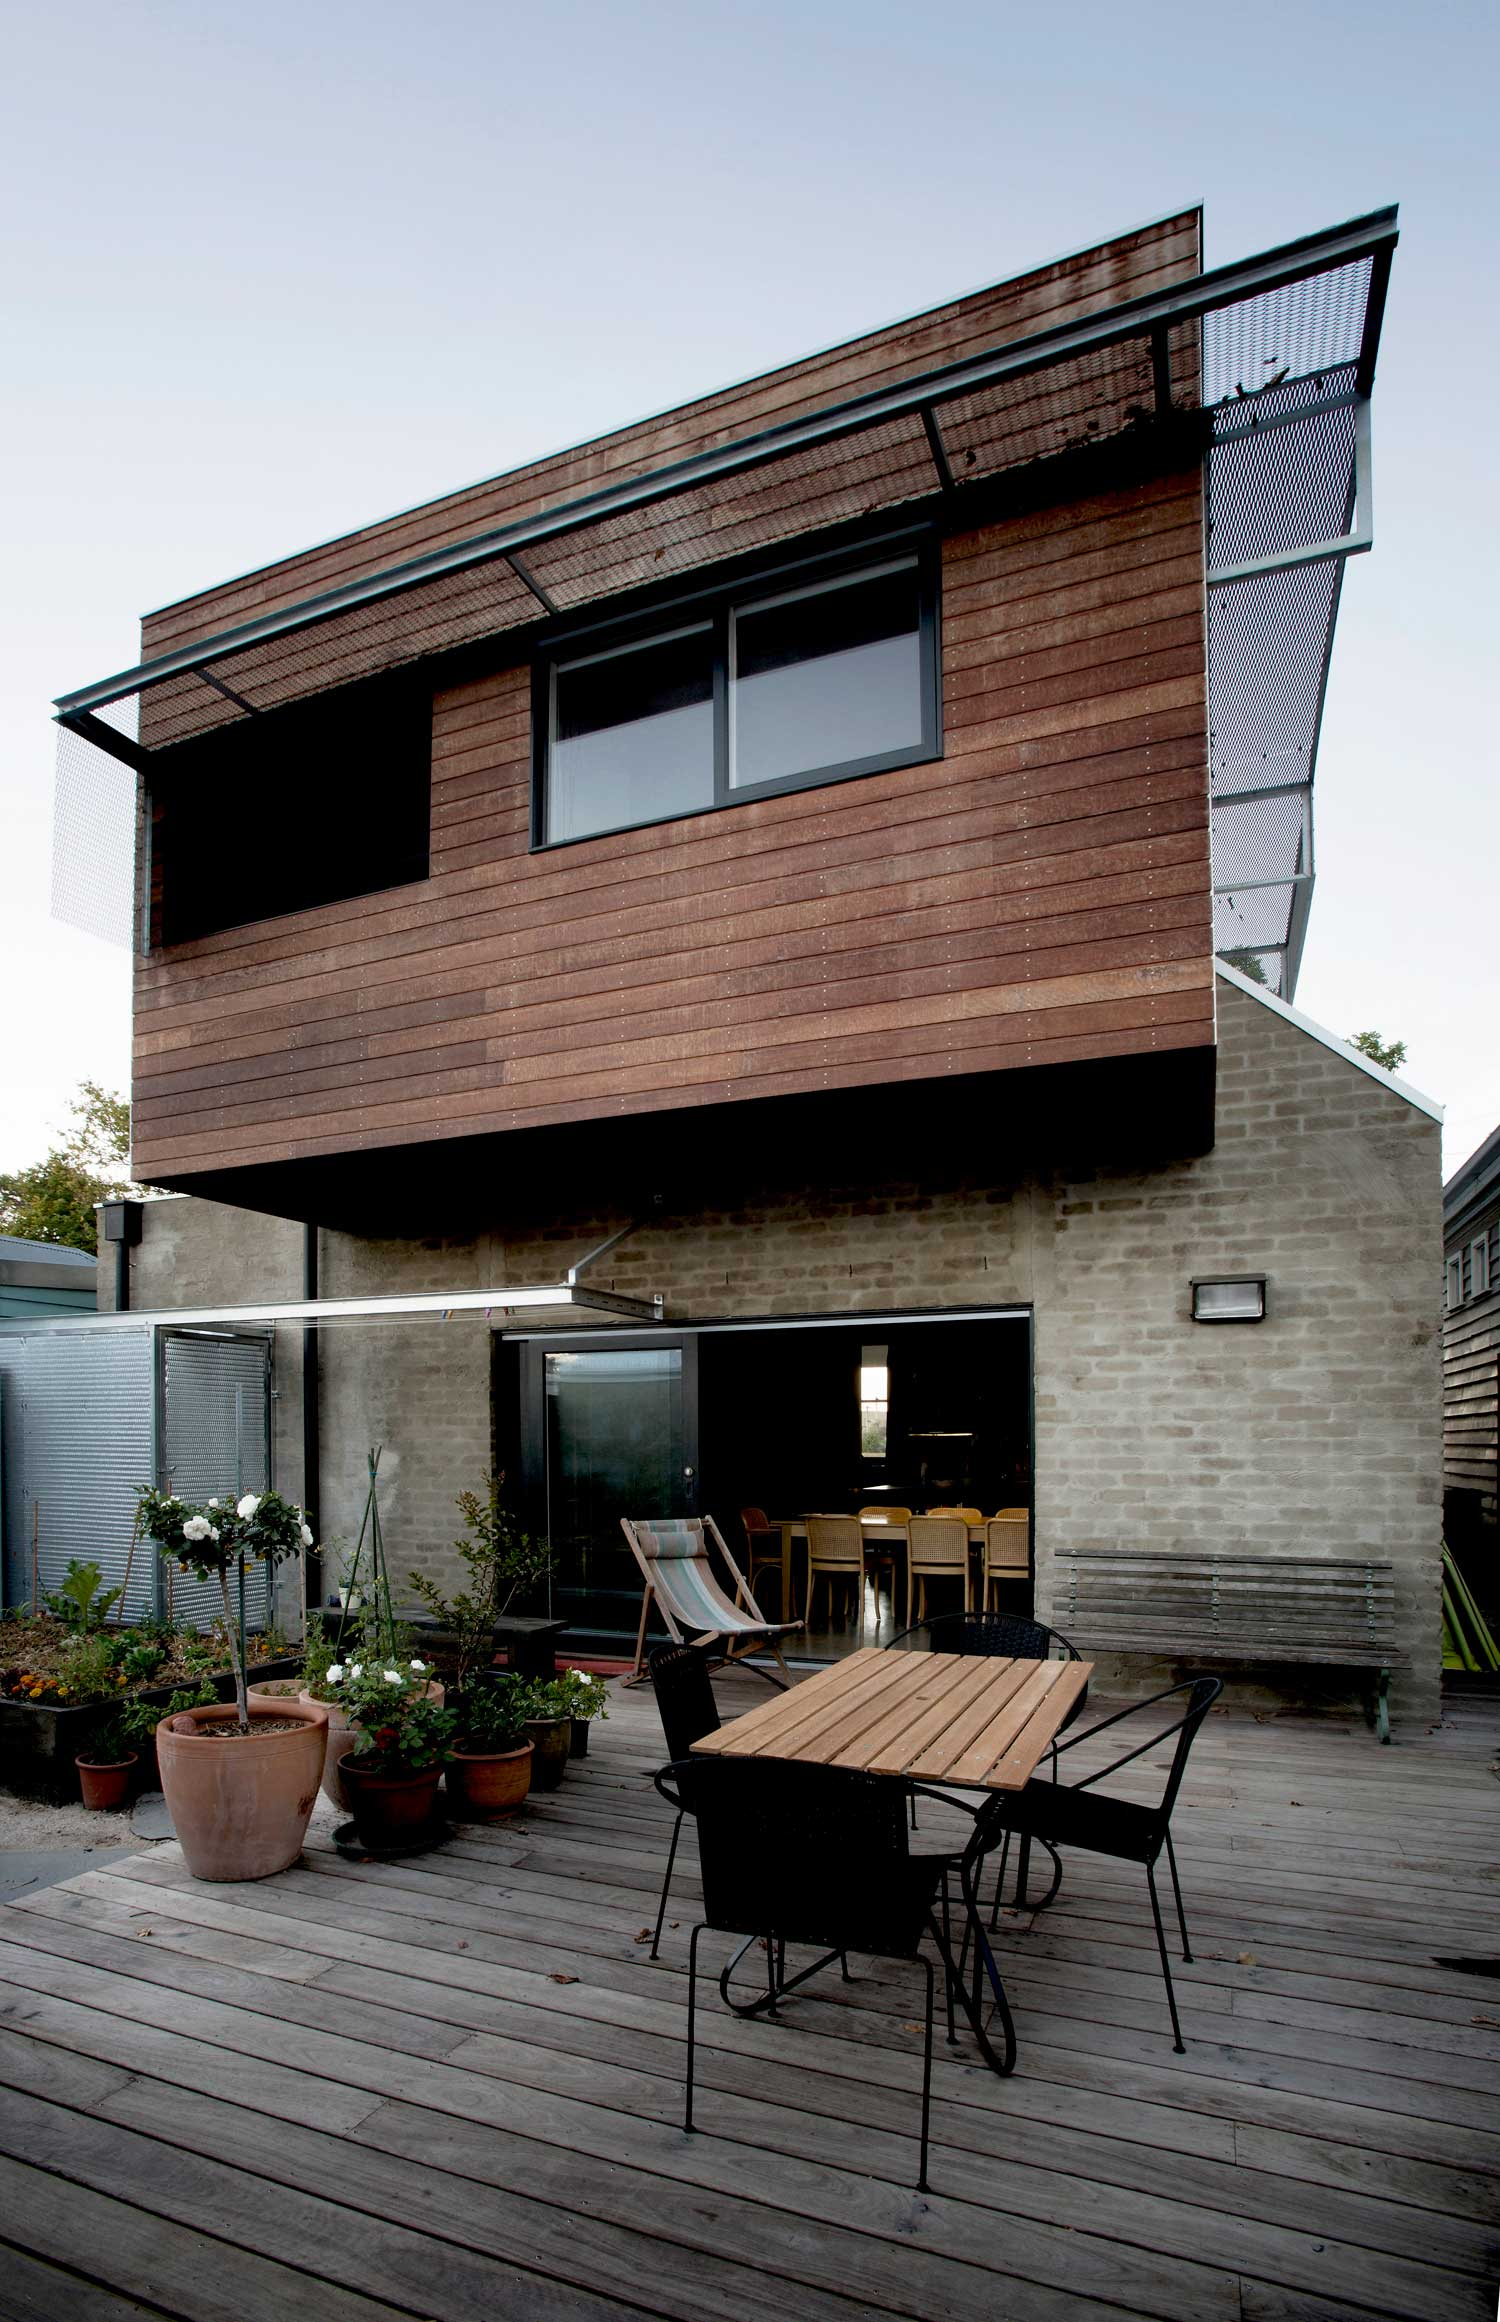 model house in melbourne by breathe architects yellowtrace breathe architecture studio yellowtrace